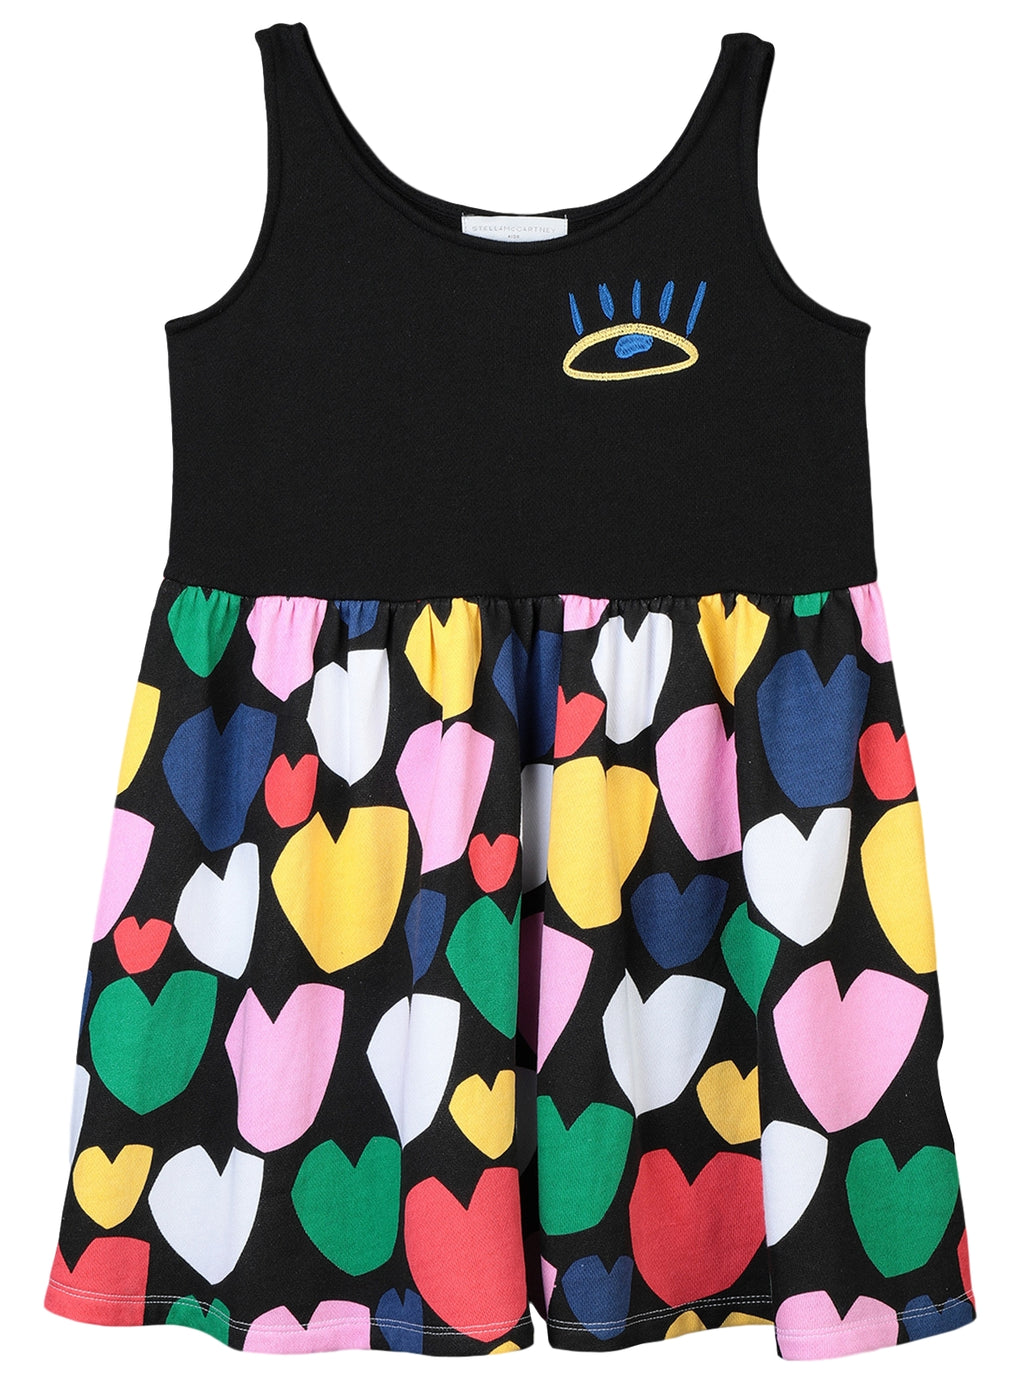 Stella McCartney Rainbow Hearts Dress